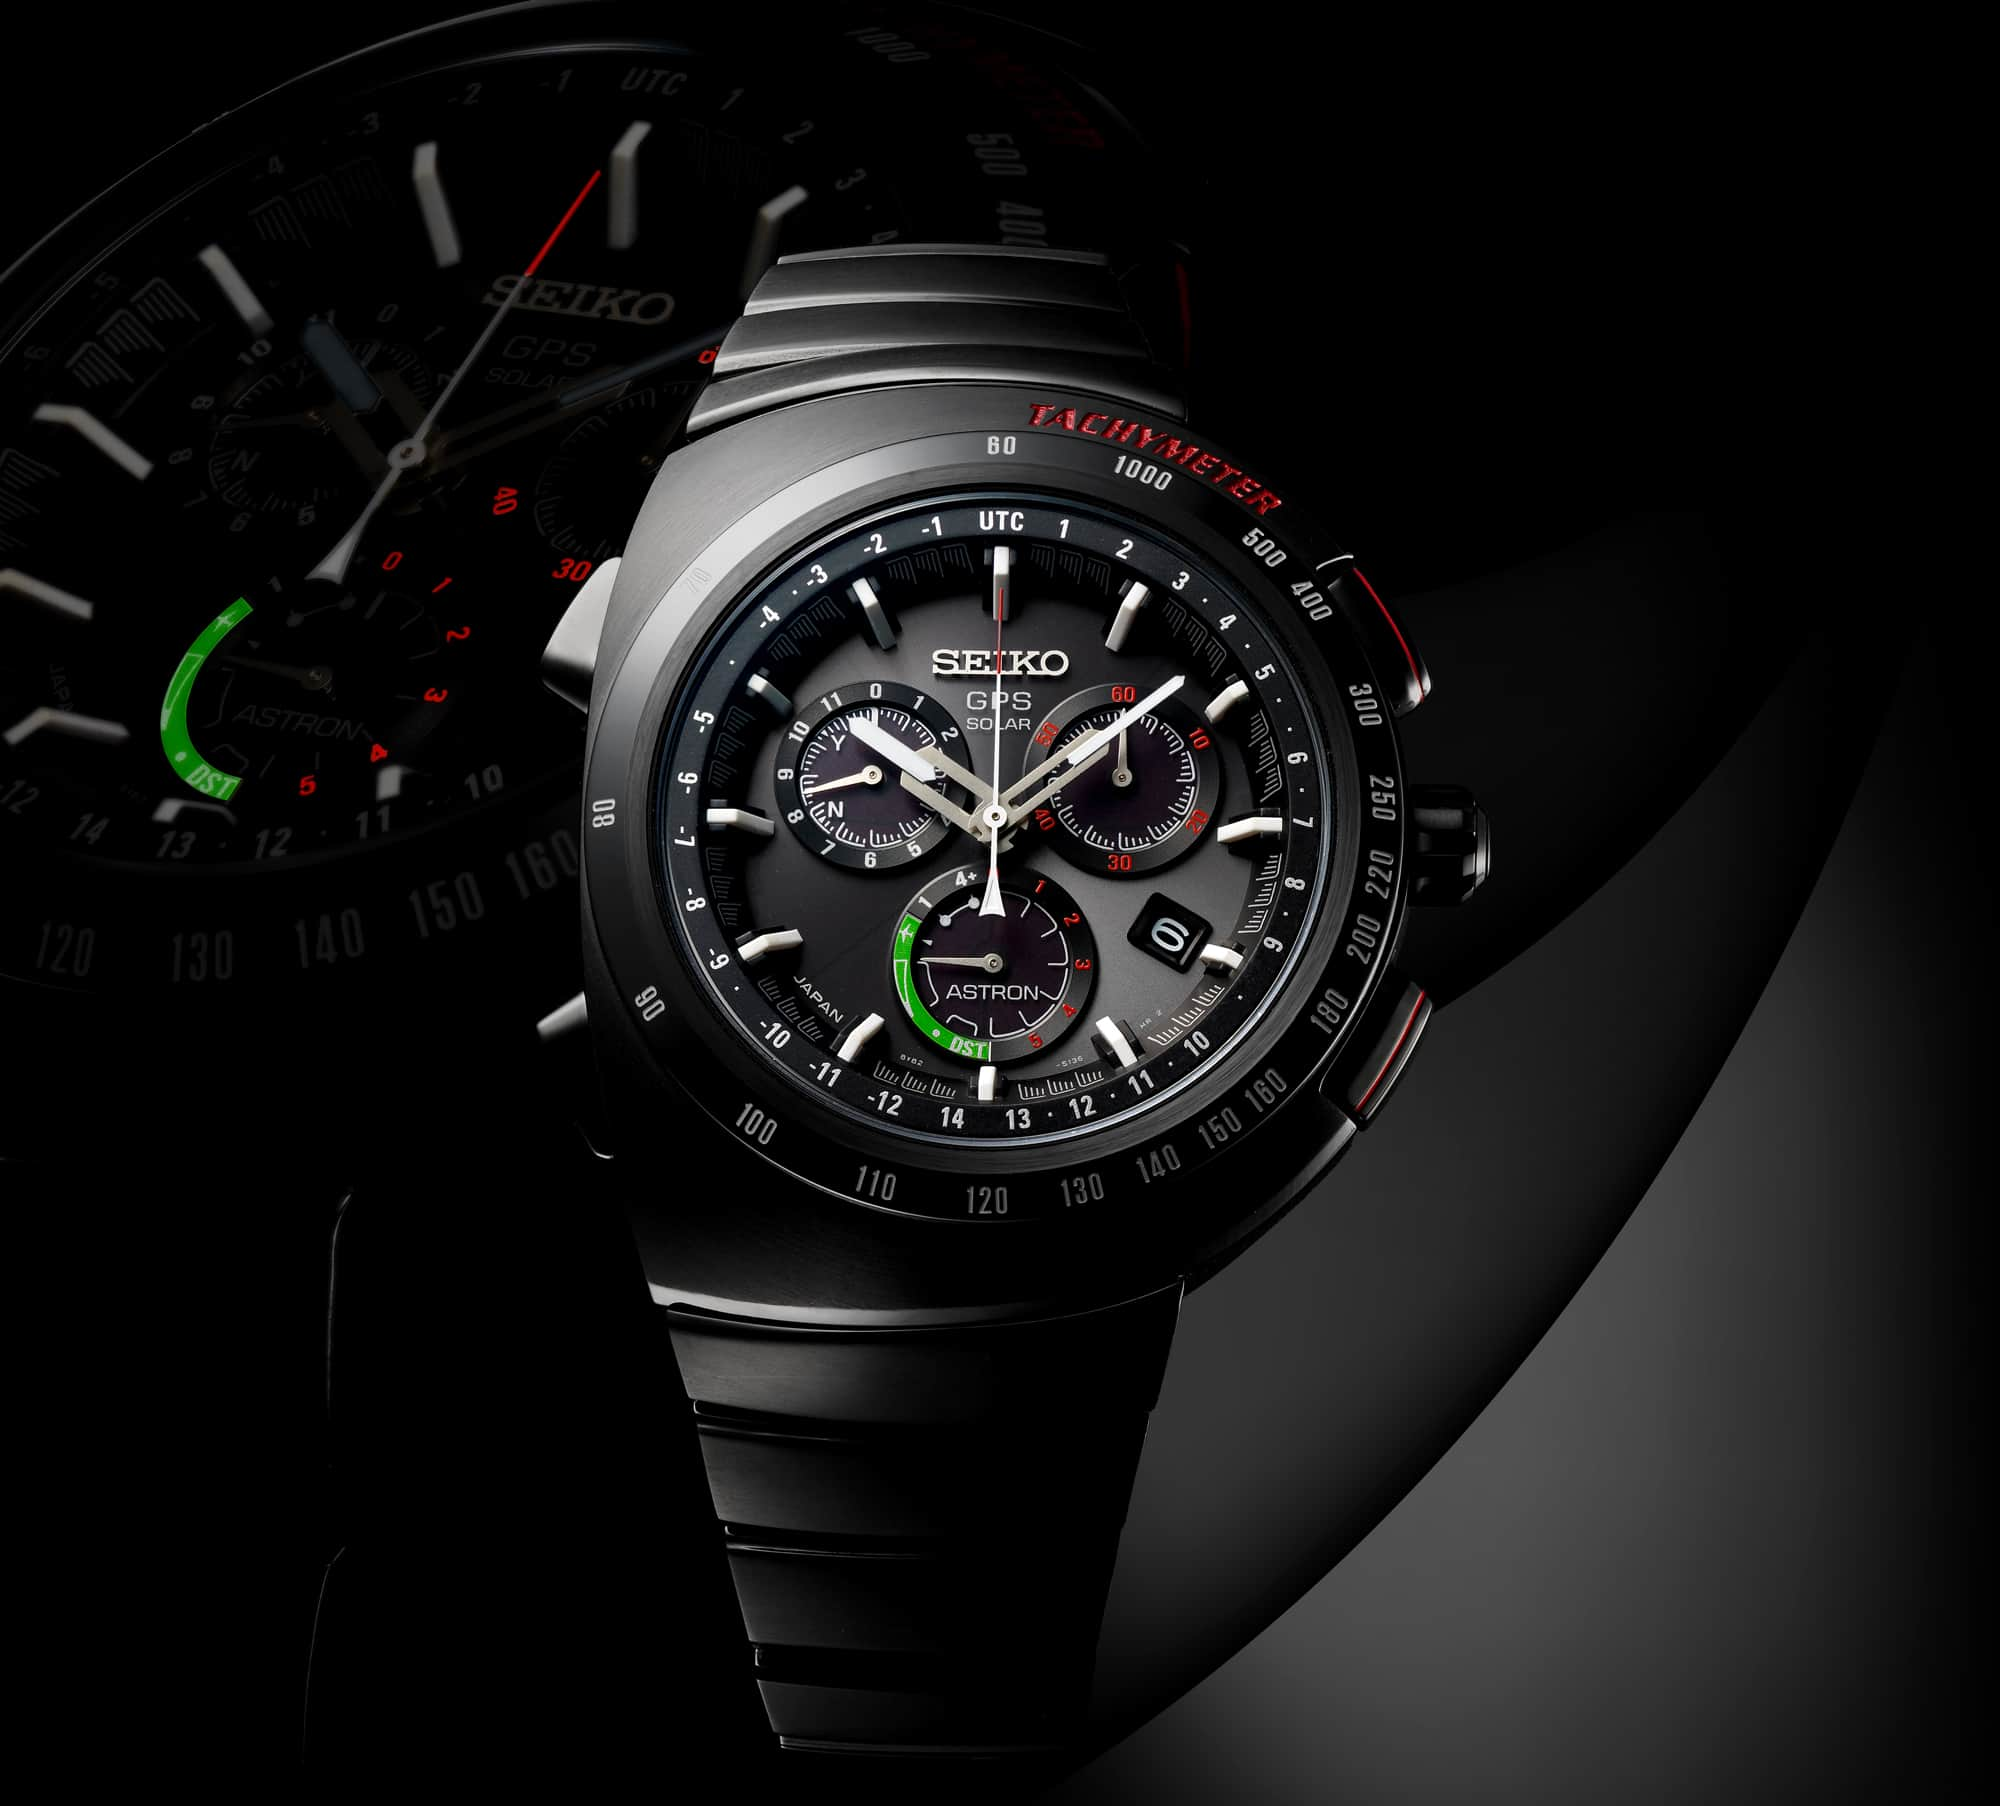 Seiko Astron Introducing The Seiko Astron Giugiaro Design Limited Edition Ref